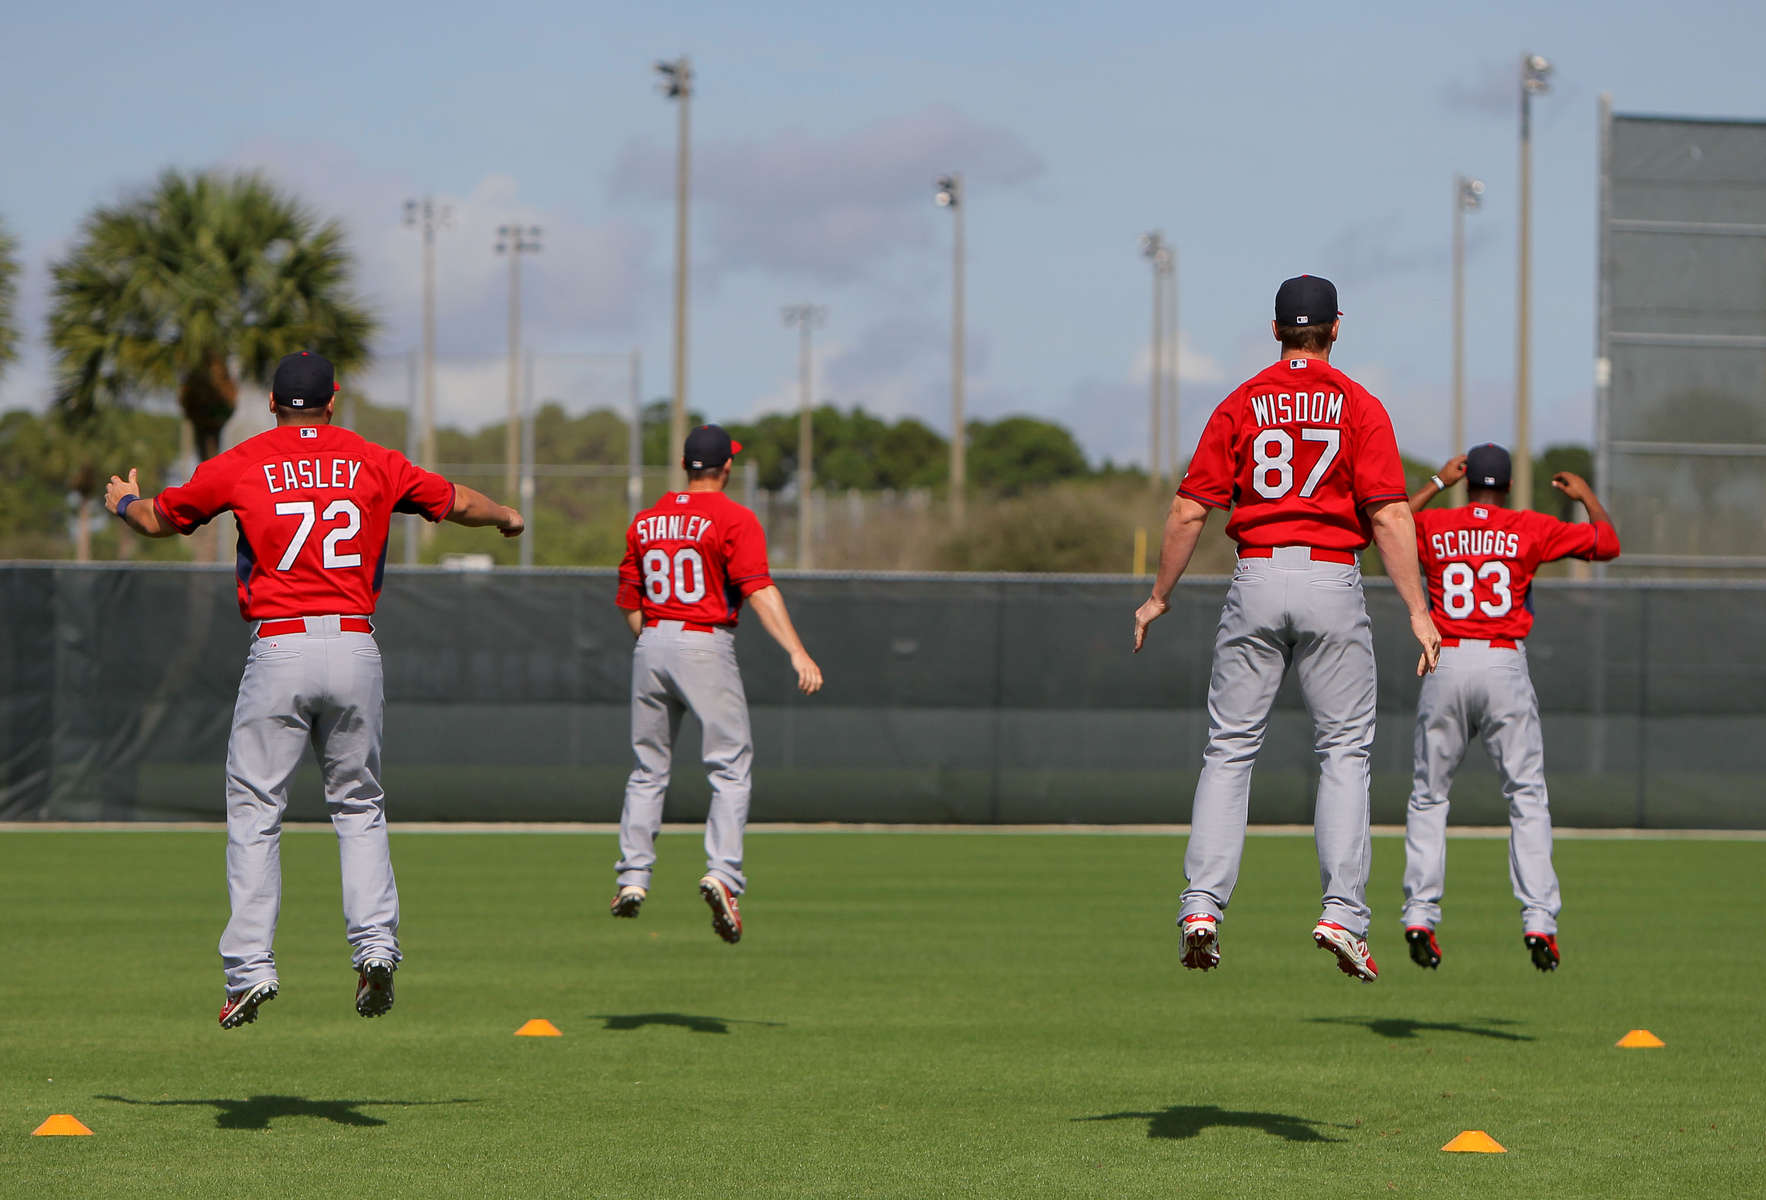 St. Louis Cardinals players go through morning exercises at the Cardinals spring training complex at Roger Dean Stadium in Jupiter, Fla. on Monday, Feb. 24, 2014.Photo By David Carson dcarson@post-dispatch.com